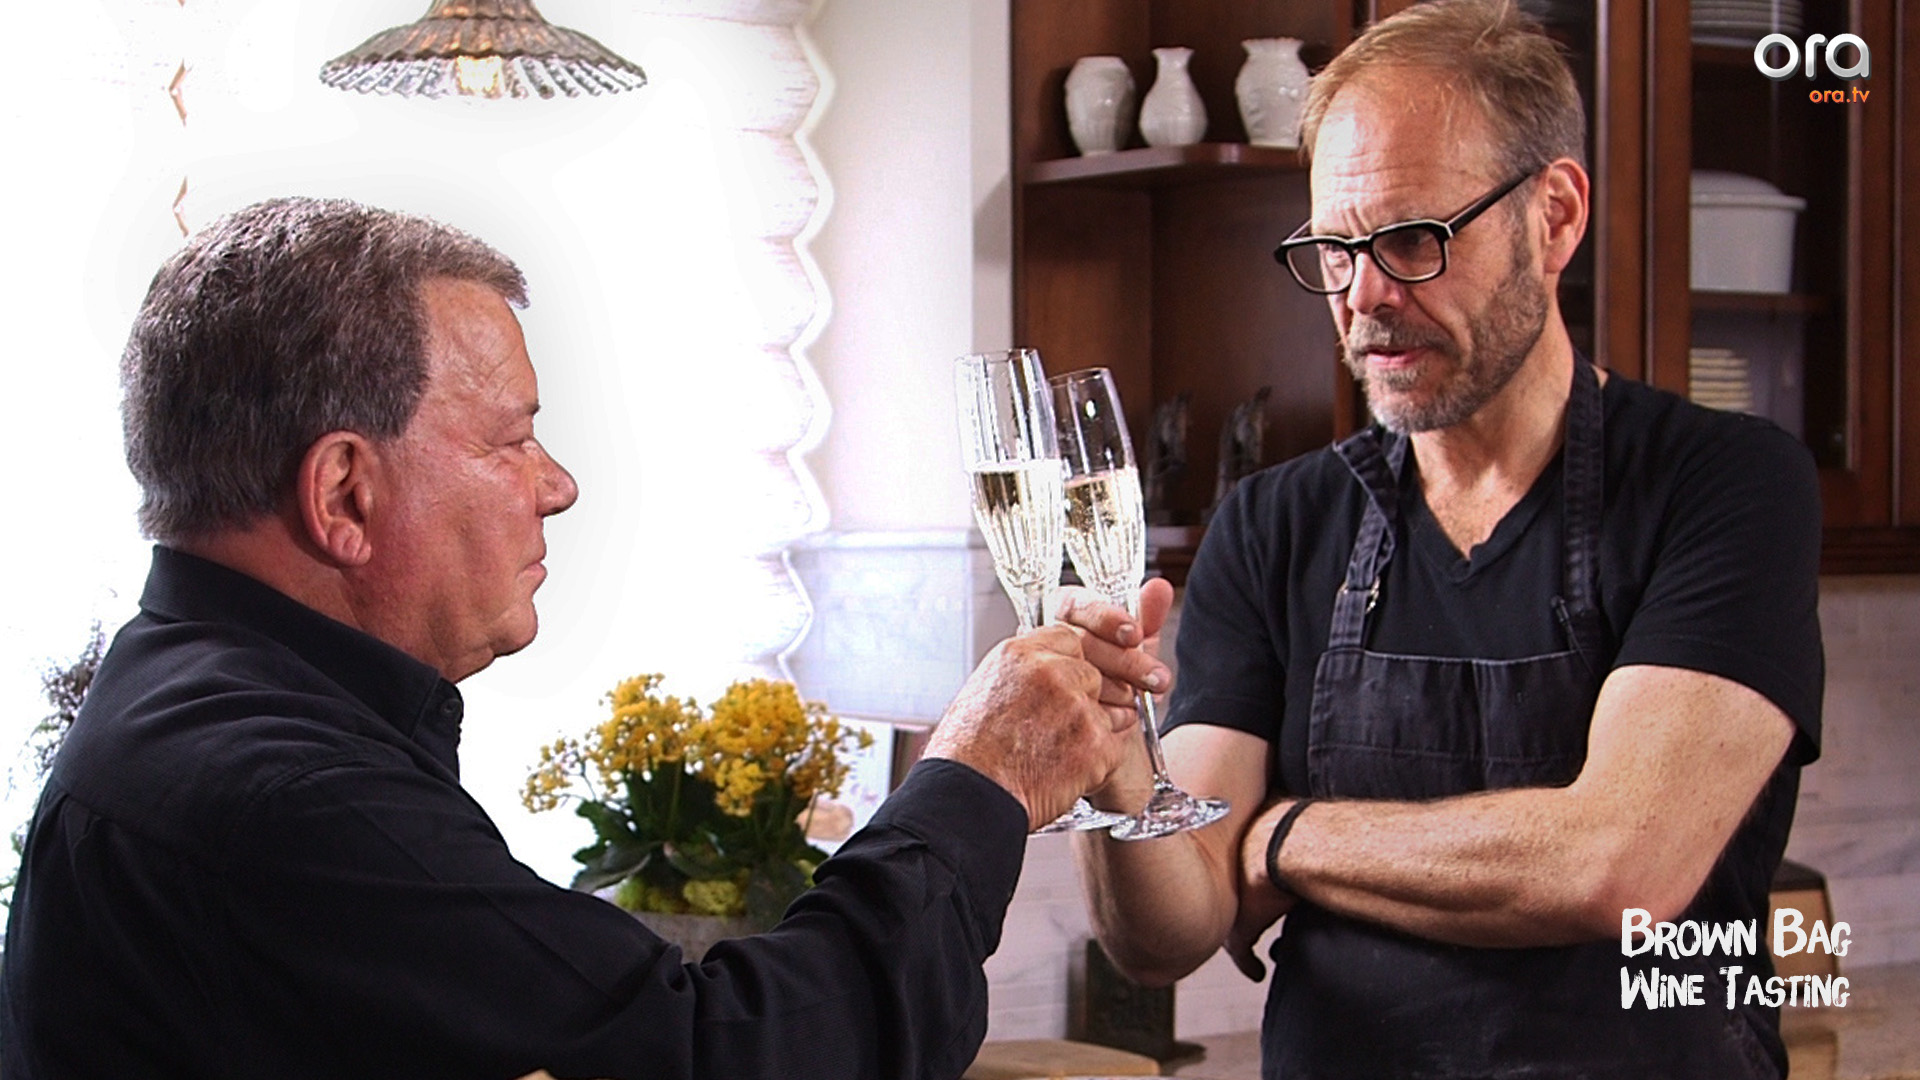 Alton Brown & William Shatner - Brown Bag Wine Tasting